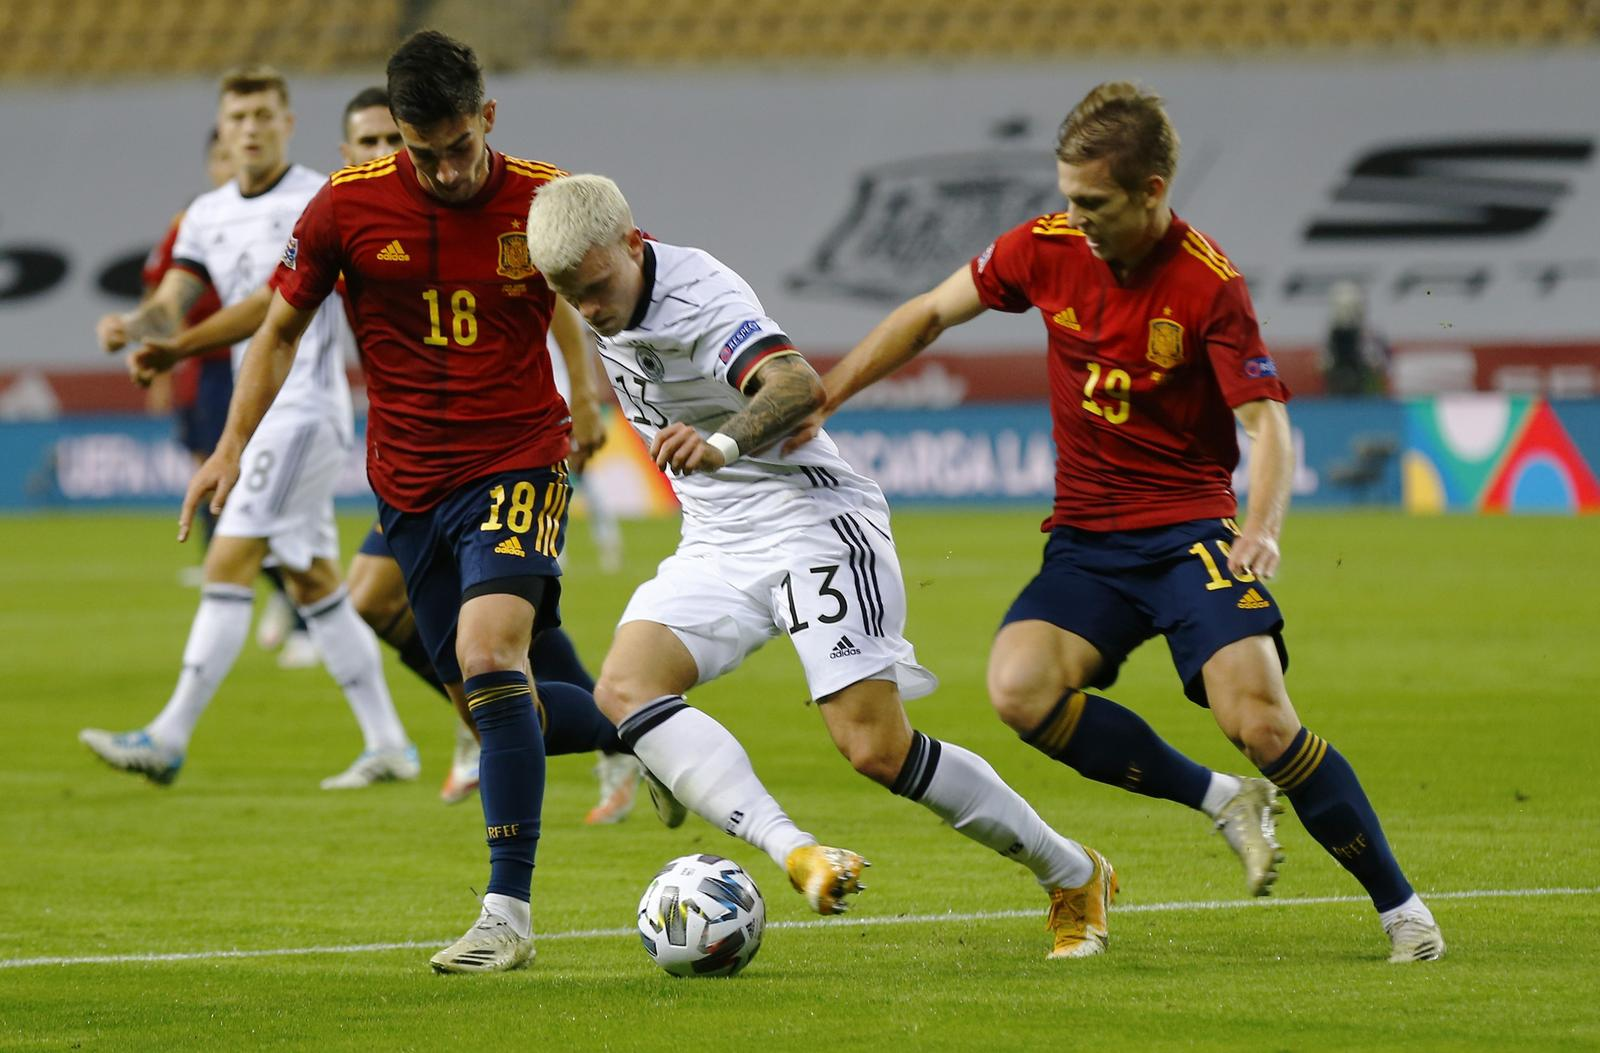 UEFA Nations League - Group D - Spain v Germany - Estadio La Cartuja, Seville, Spain - November 17, 2020 Spain's Ferran Torres in action with Germany's Philipp Max. Photo: Reuters